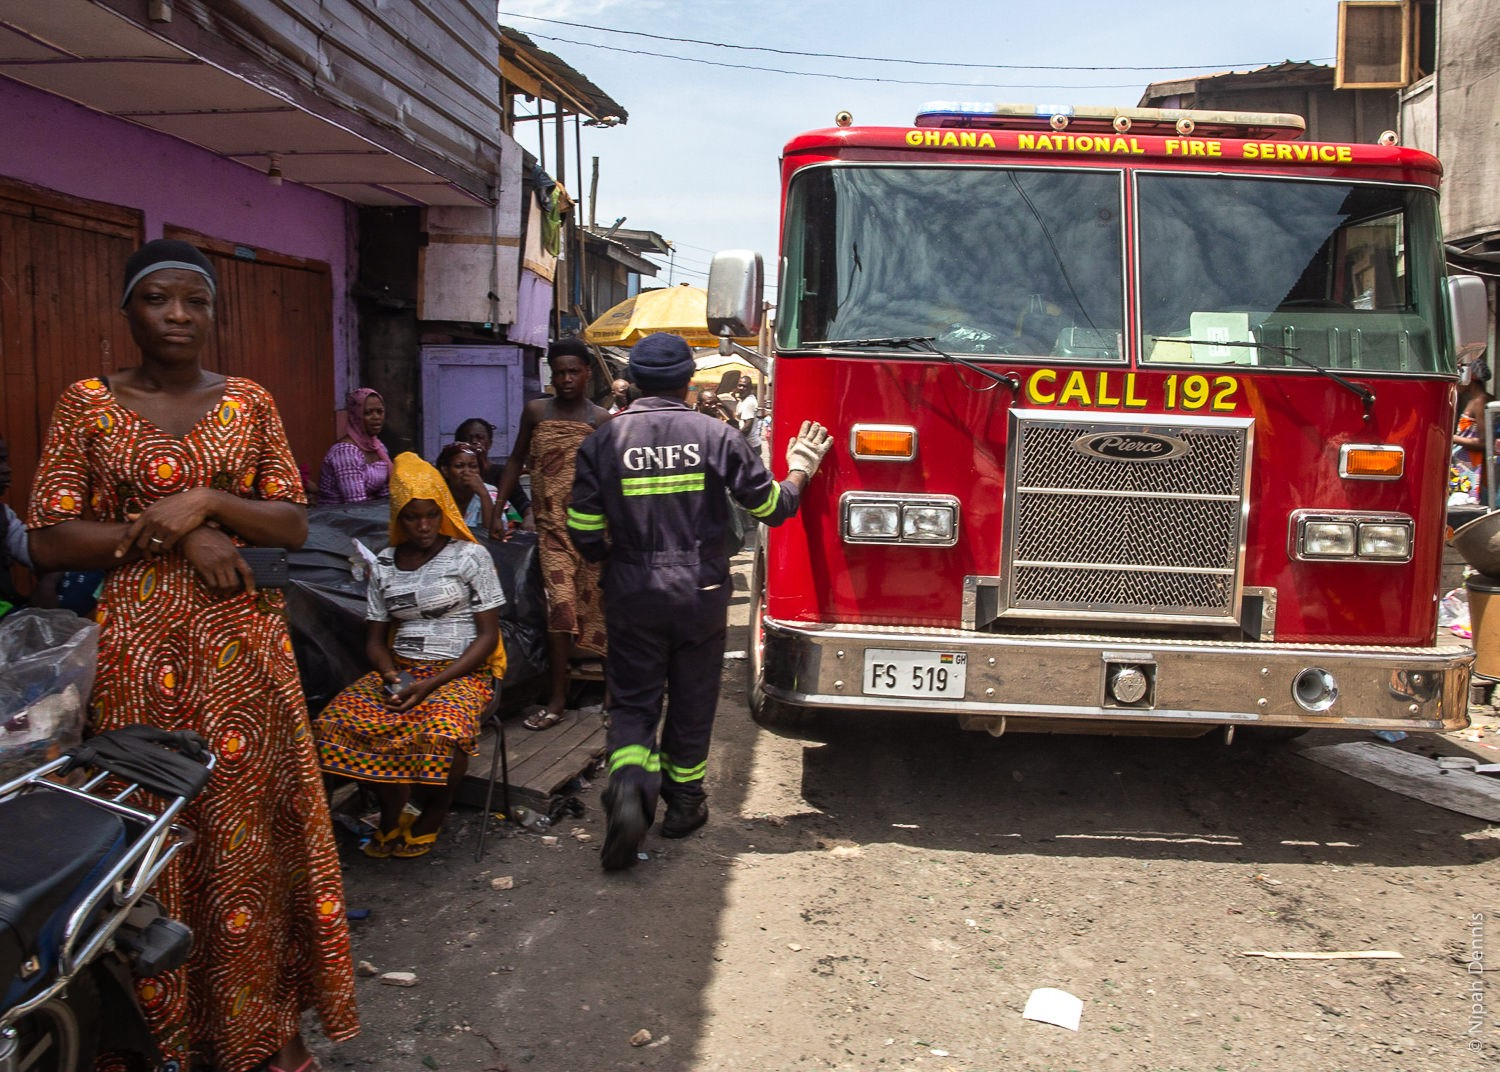 Firefighters reverse from the residence as homes burn to the ground in Agbogbloshie, Accra, Ghana. April 7, 2020. Photo by Ni